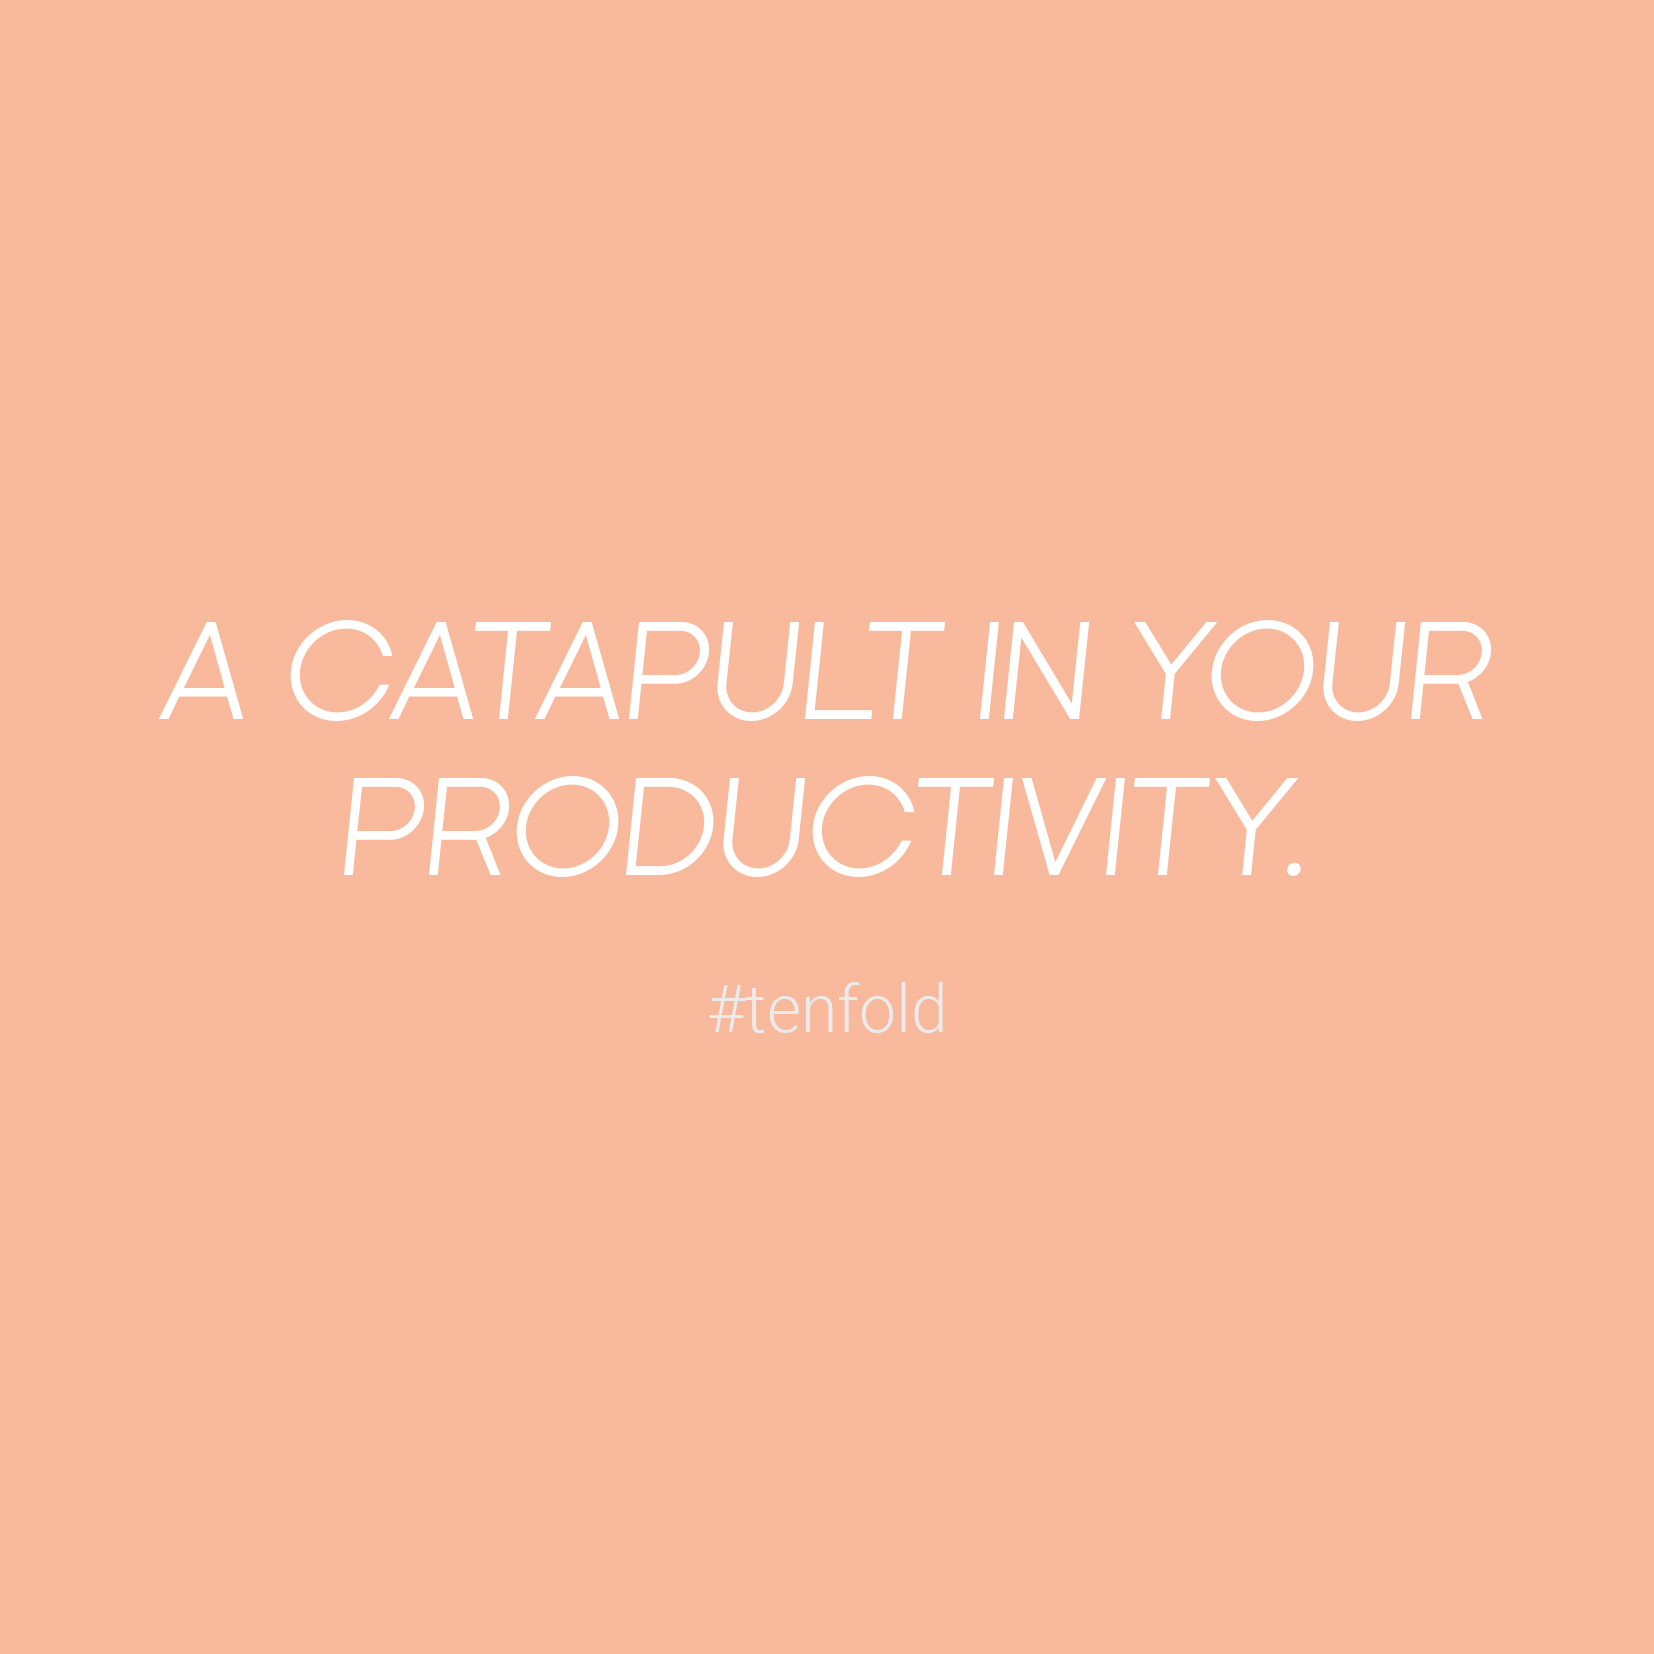 A Catapult In Your Productivity.